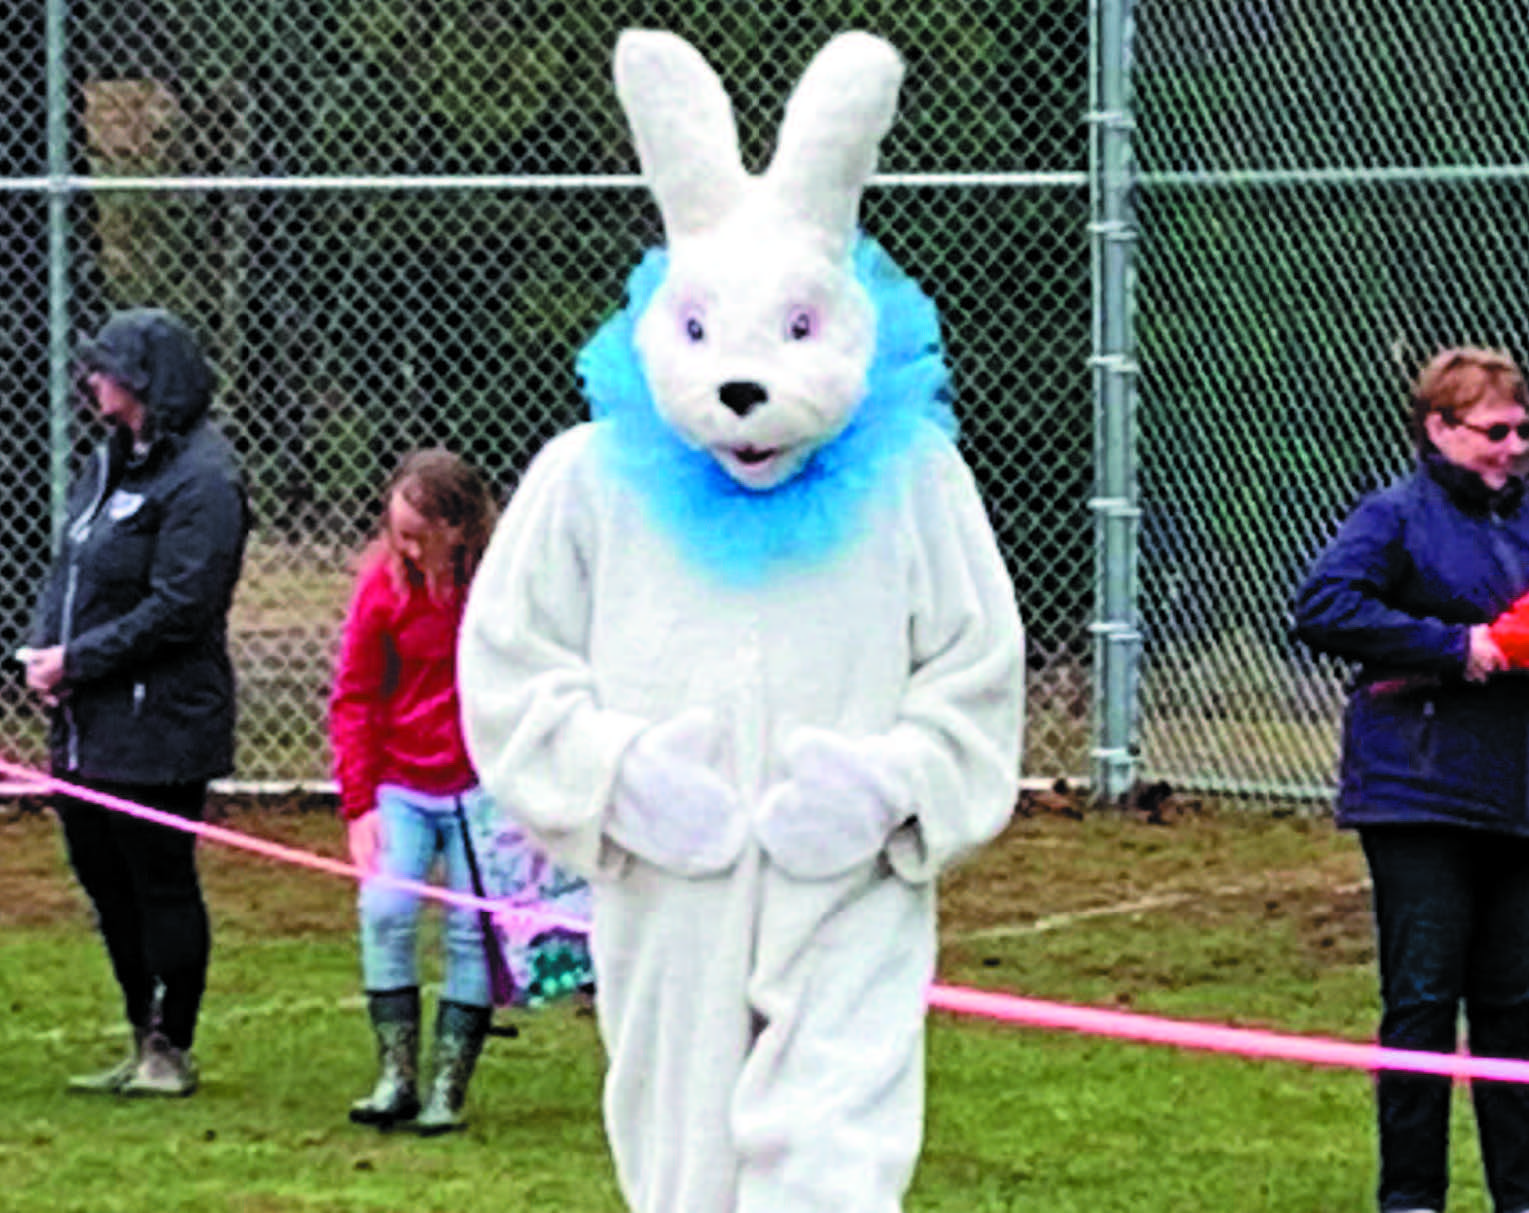 Easter Bunny eagerly awaits his big day.